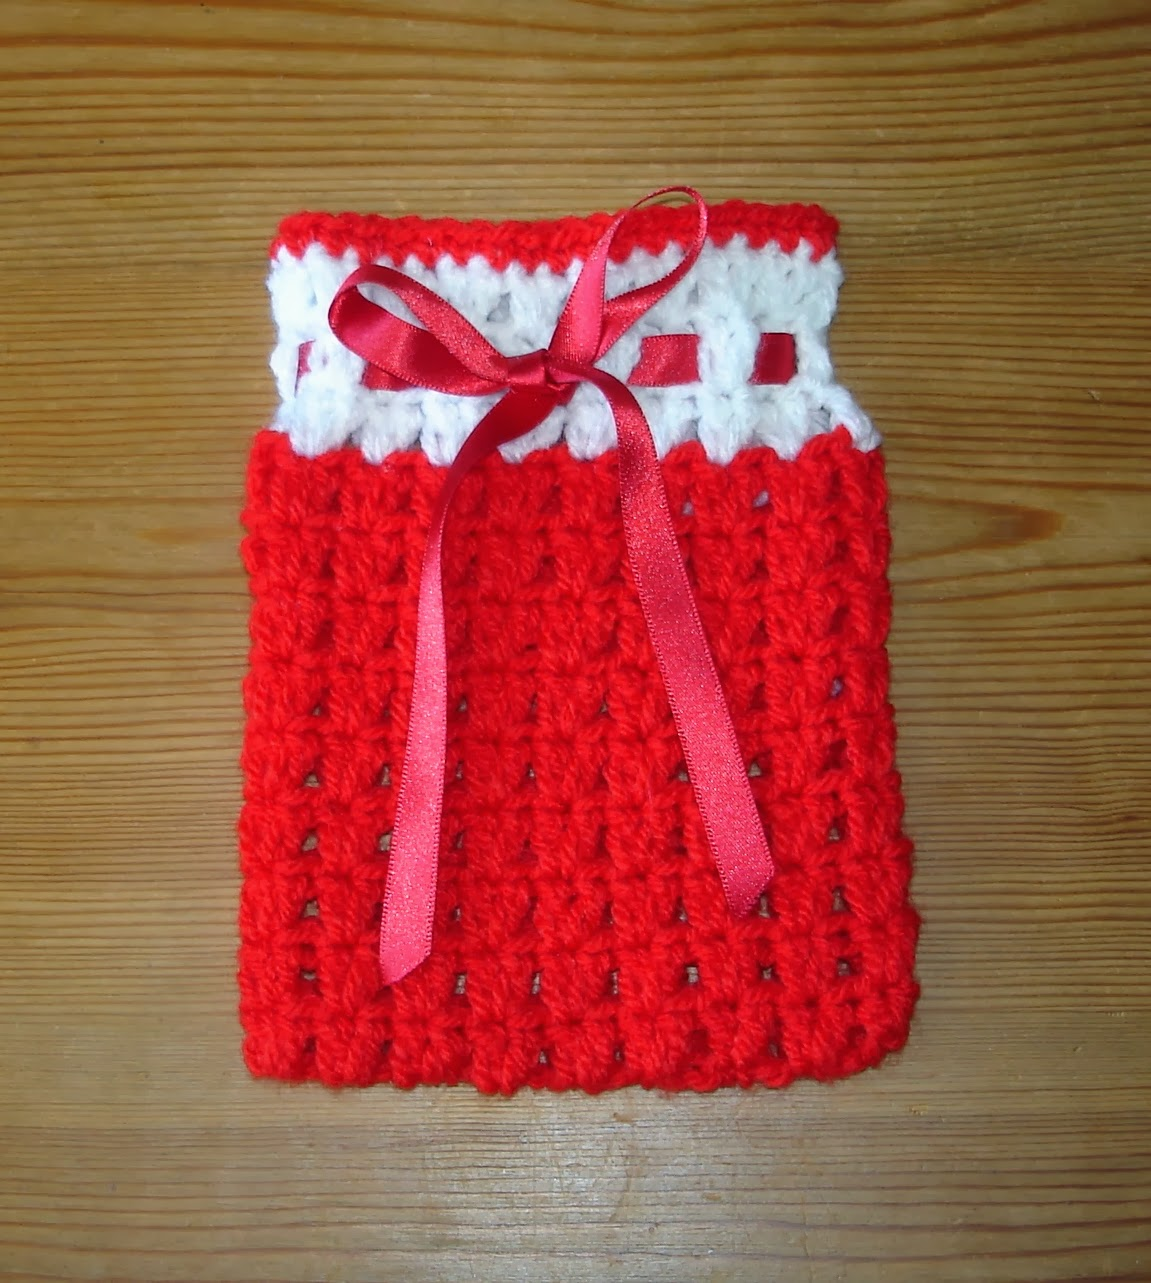 Crocheting Gifts Ideas : Crochet Gift Bags Crochet Ideas Pinterest